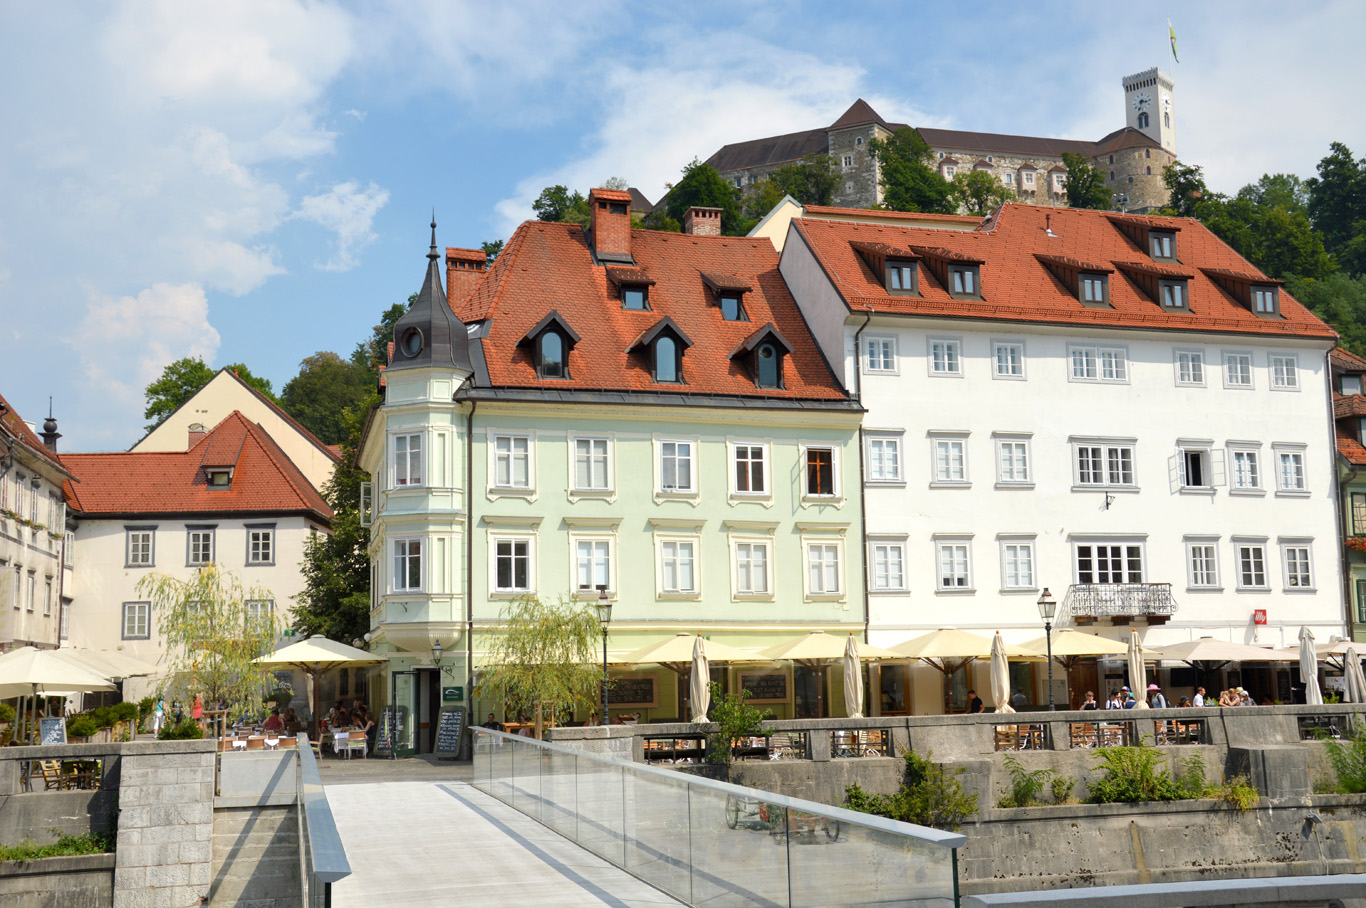 Old Town - the castle in the background